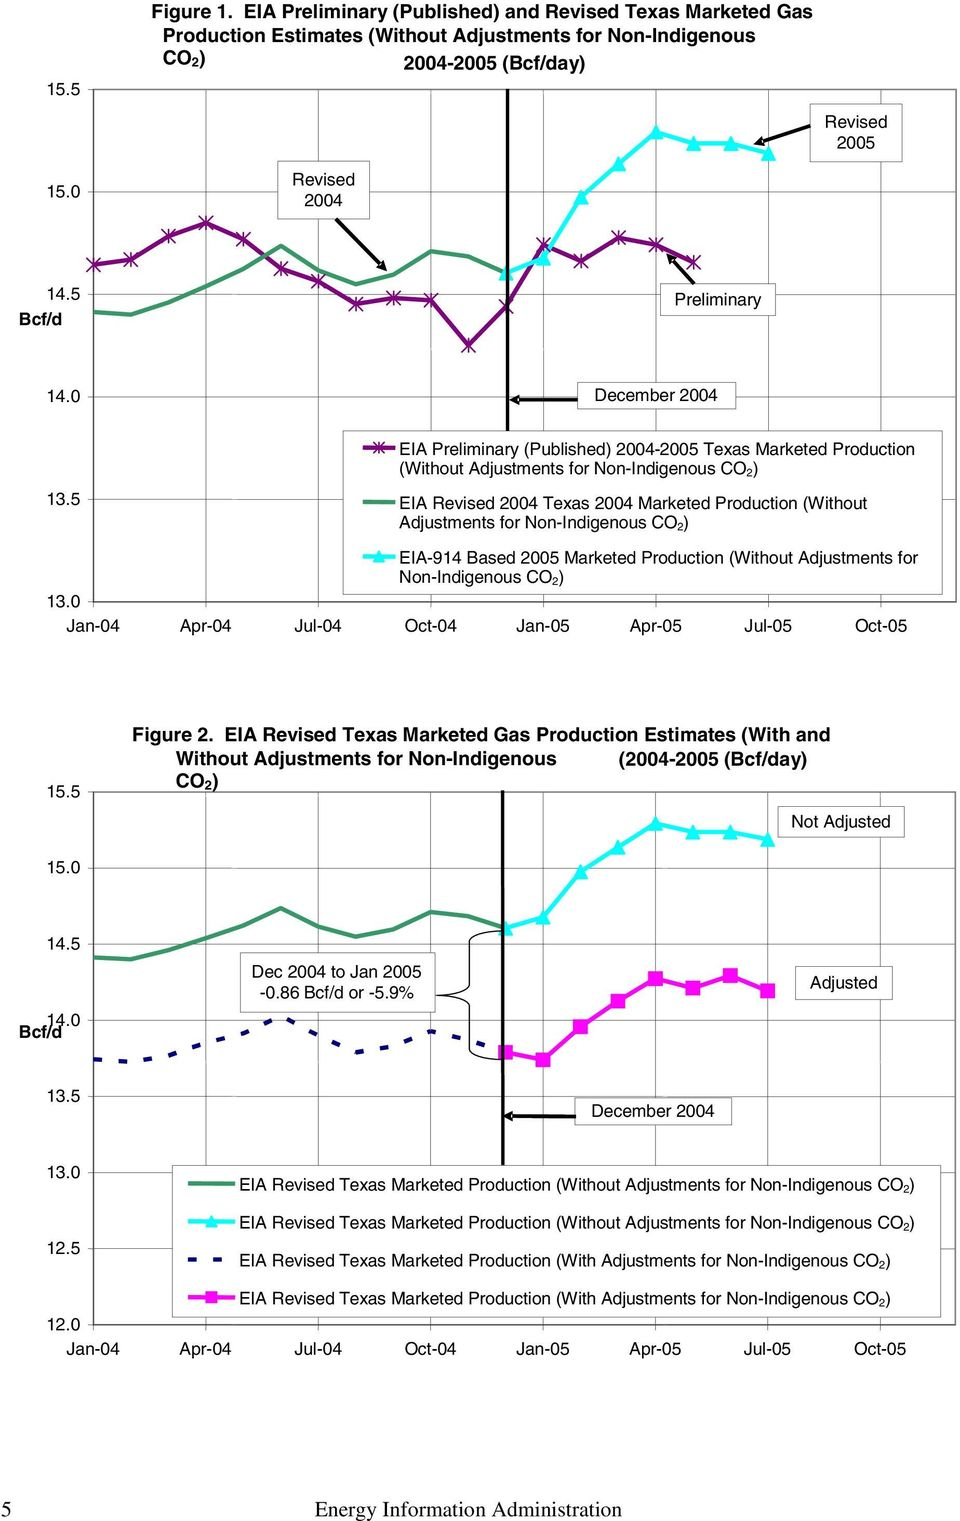 5 EIA Preliminary (Published) 2004-2005 Texas Marketed Production (Without Adjustments for Non-Indigenous CO 2) EIA Revised 2004 Texas 2004 Marketed Production (Without Adjustments for Non-Indigenous